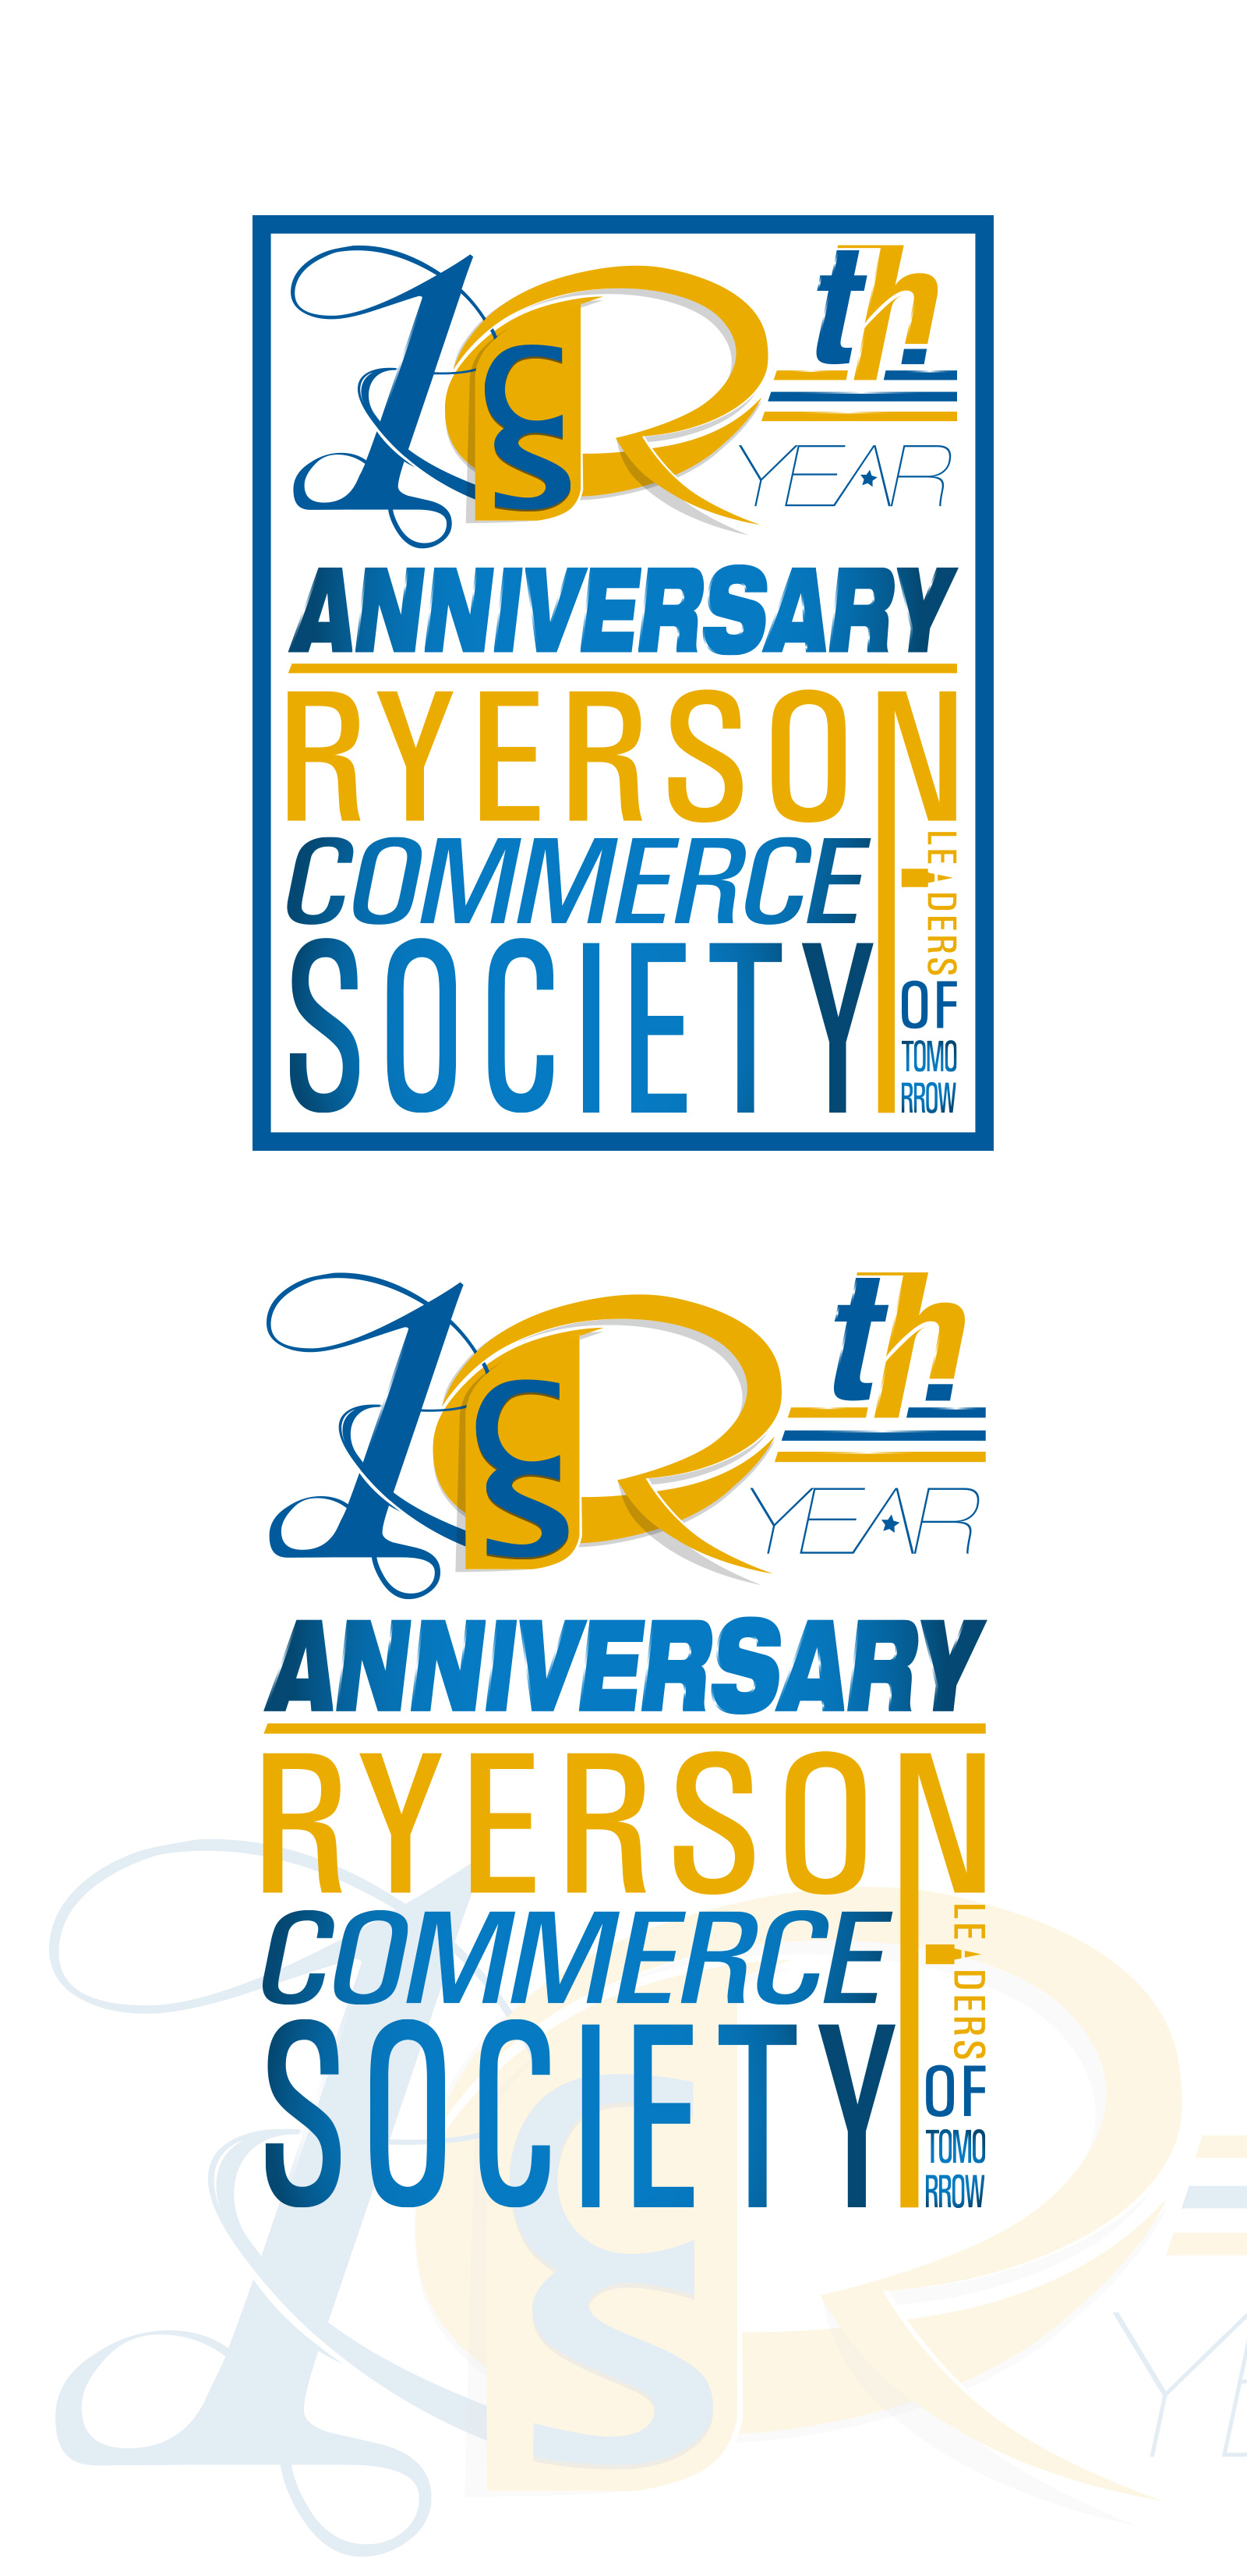 Logo Design by olii - Entry No. 79 in the Logo Design Contest 10 Year Anniversary Logo Design for the Ryerson Commerce Society.